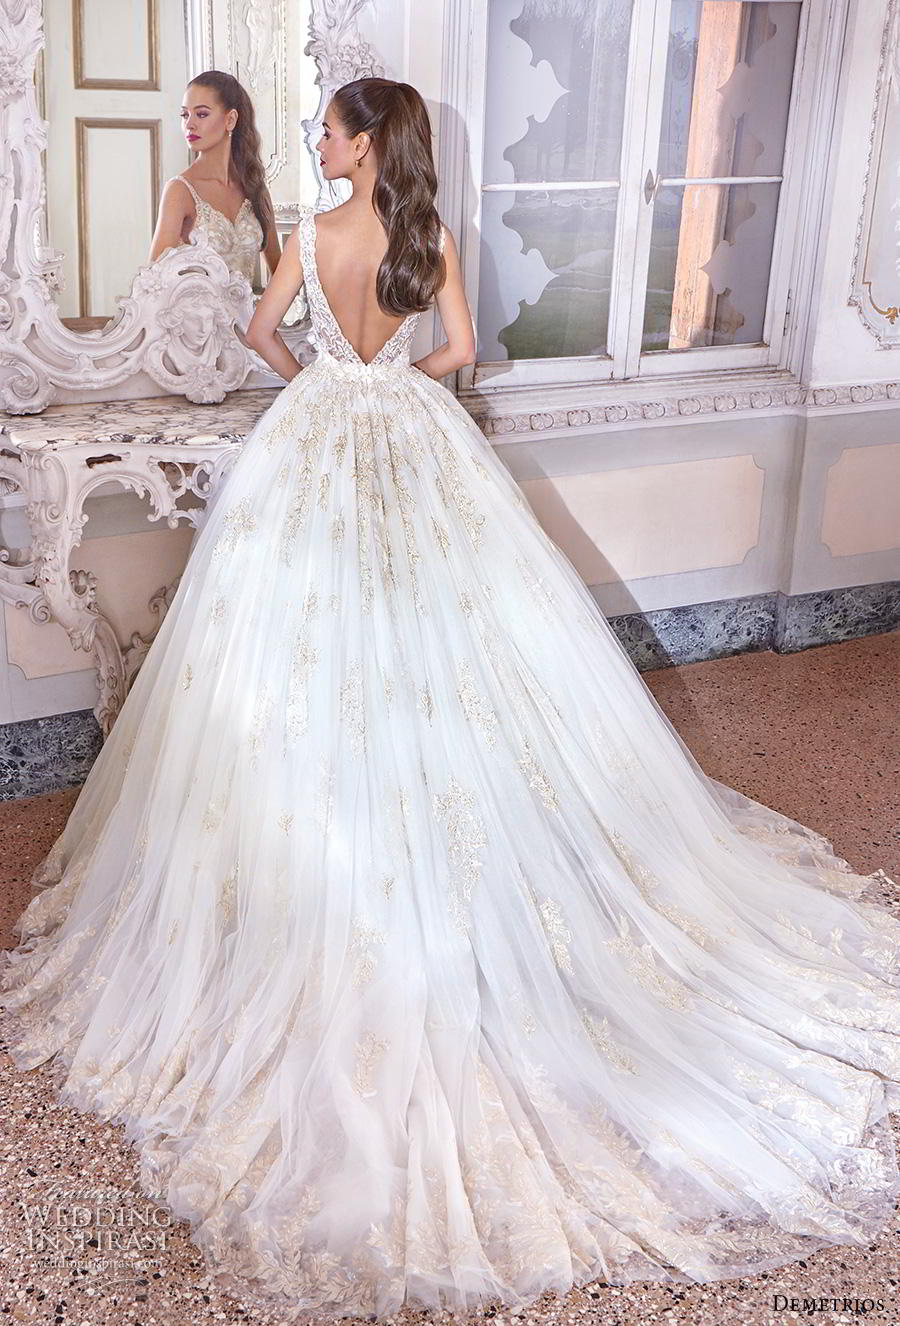 demetrios 2019 bridal sleeveless deep v neck heavily embellished bodice glitzy glamorous princess ball gown a  line wedding dress backless v back chapel train (14) bv